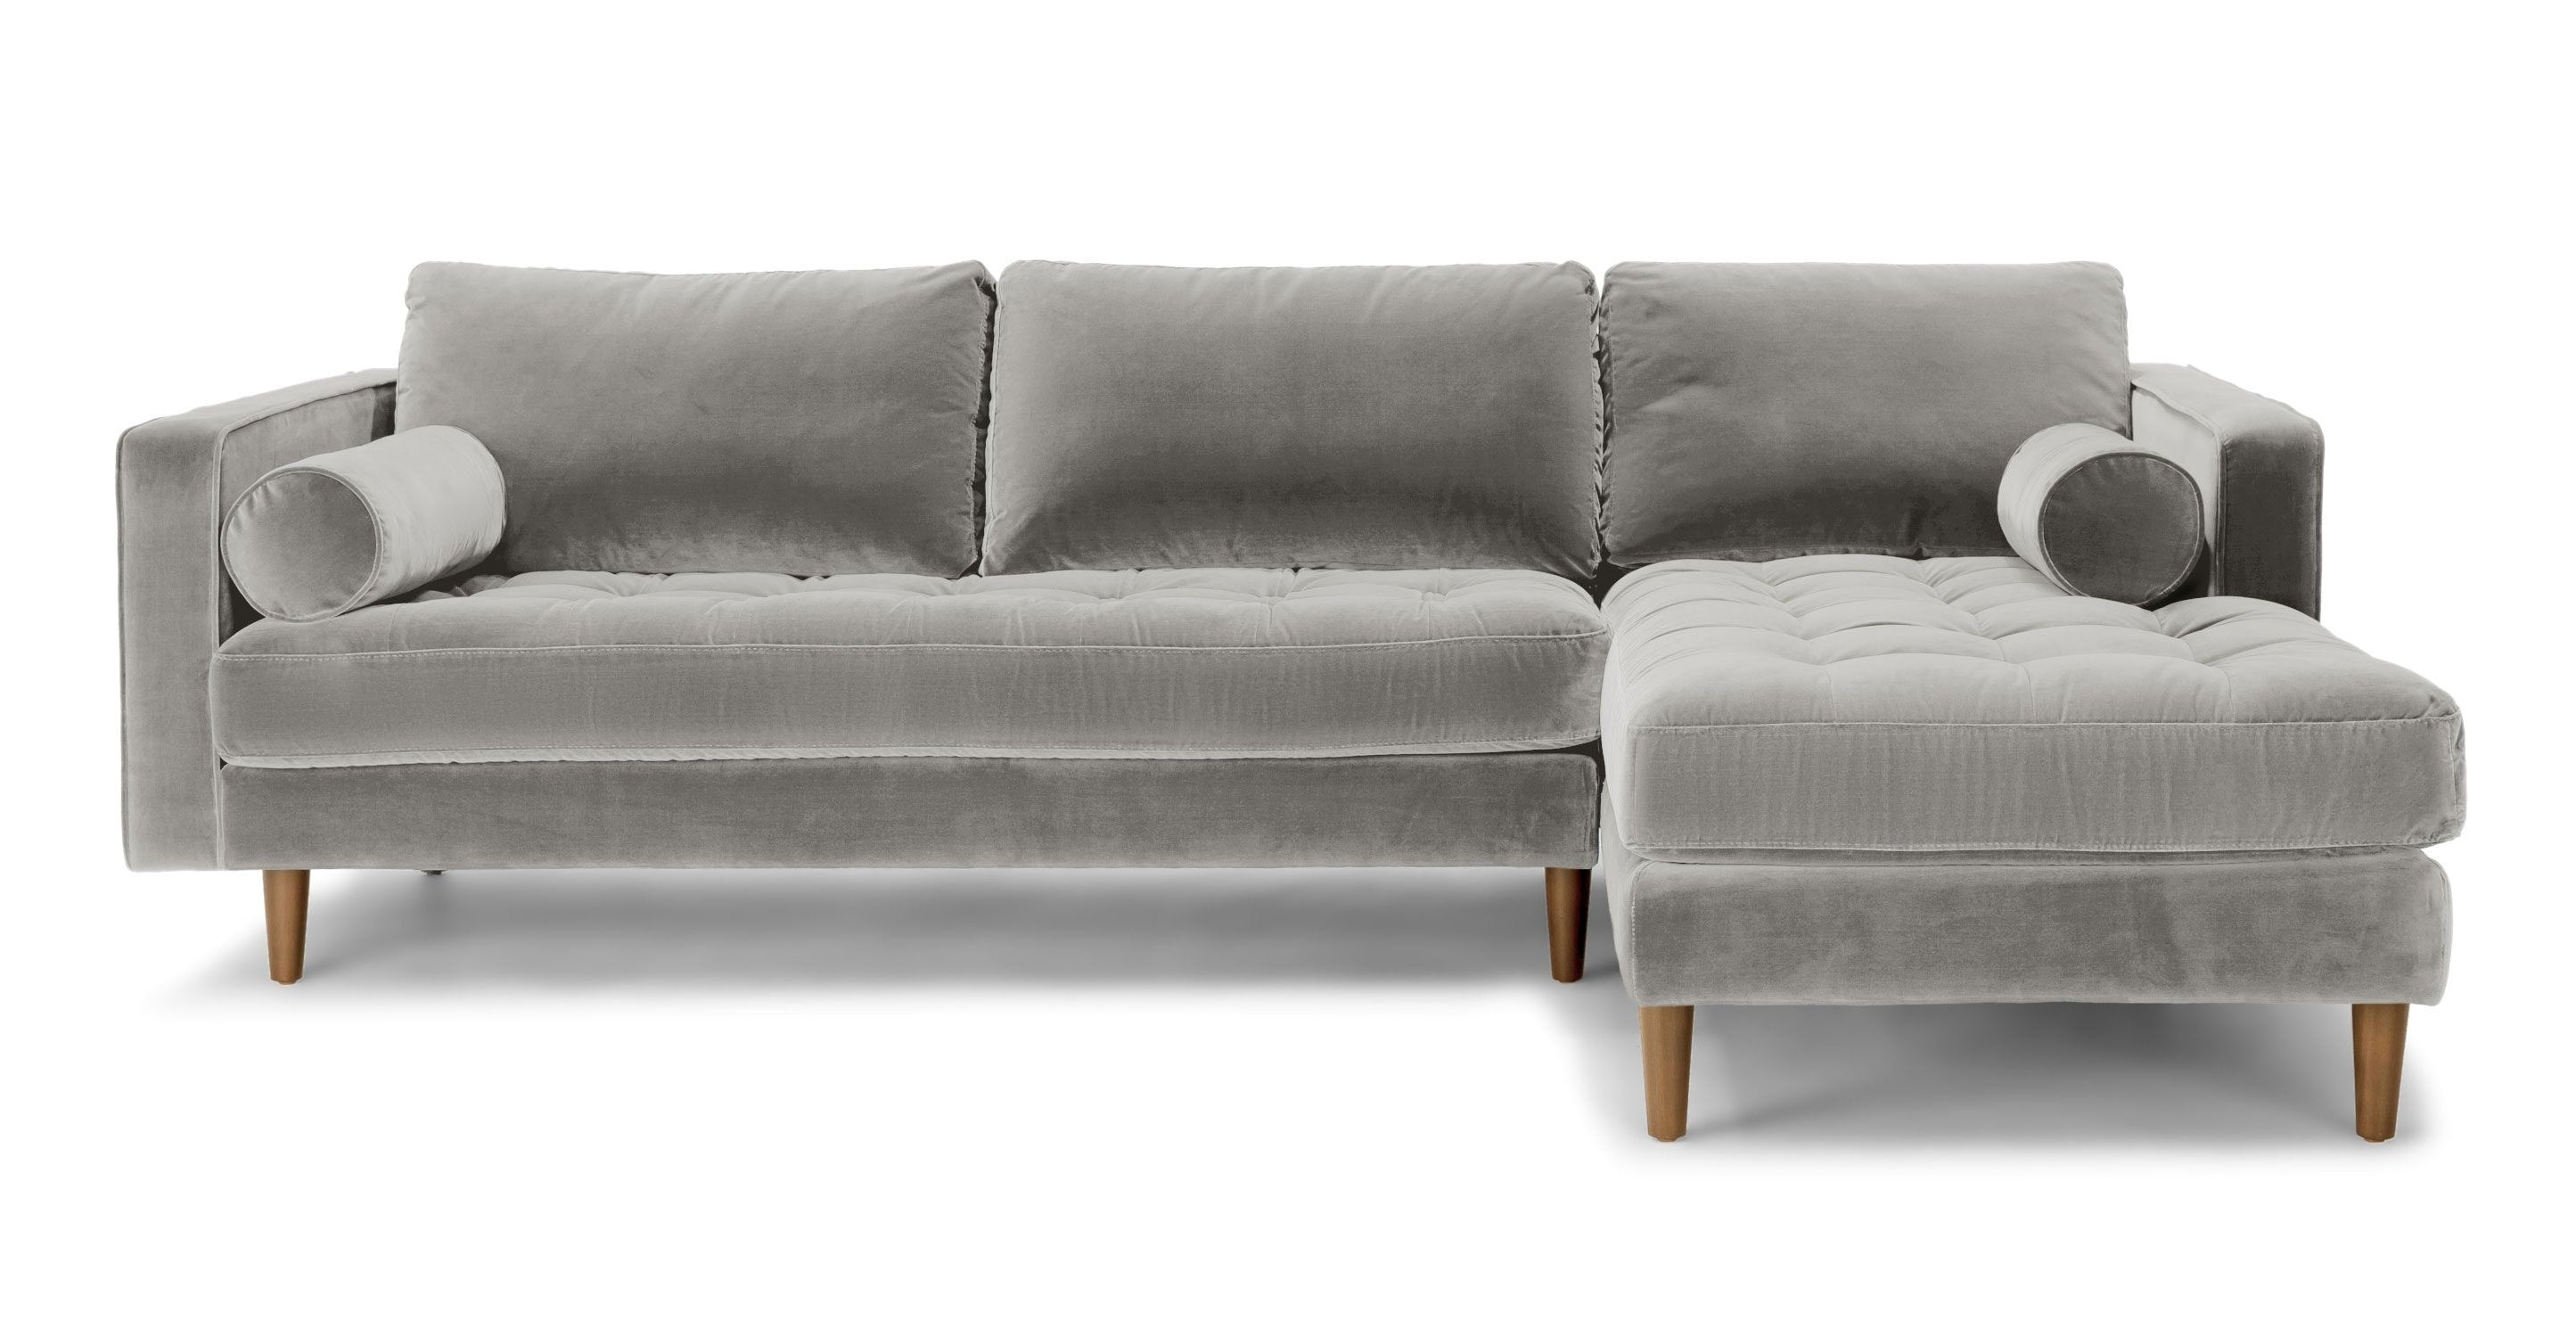 Abbieht Chaise Sectional Sofa With Large Cushionsengland Ivy In Regina Sectional Sofas (View 6 of 10)